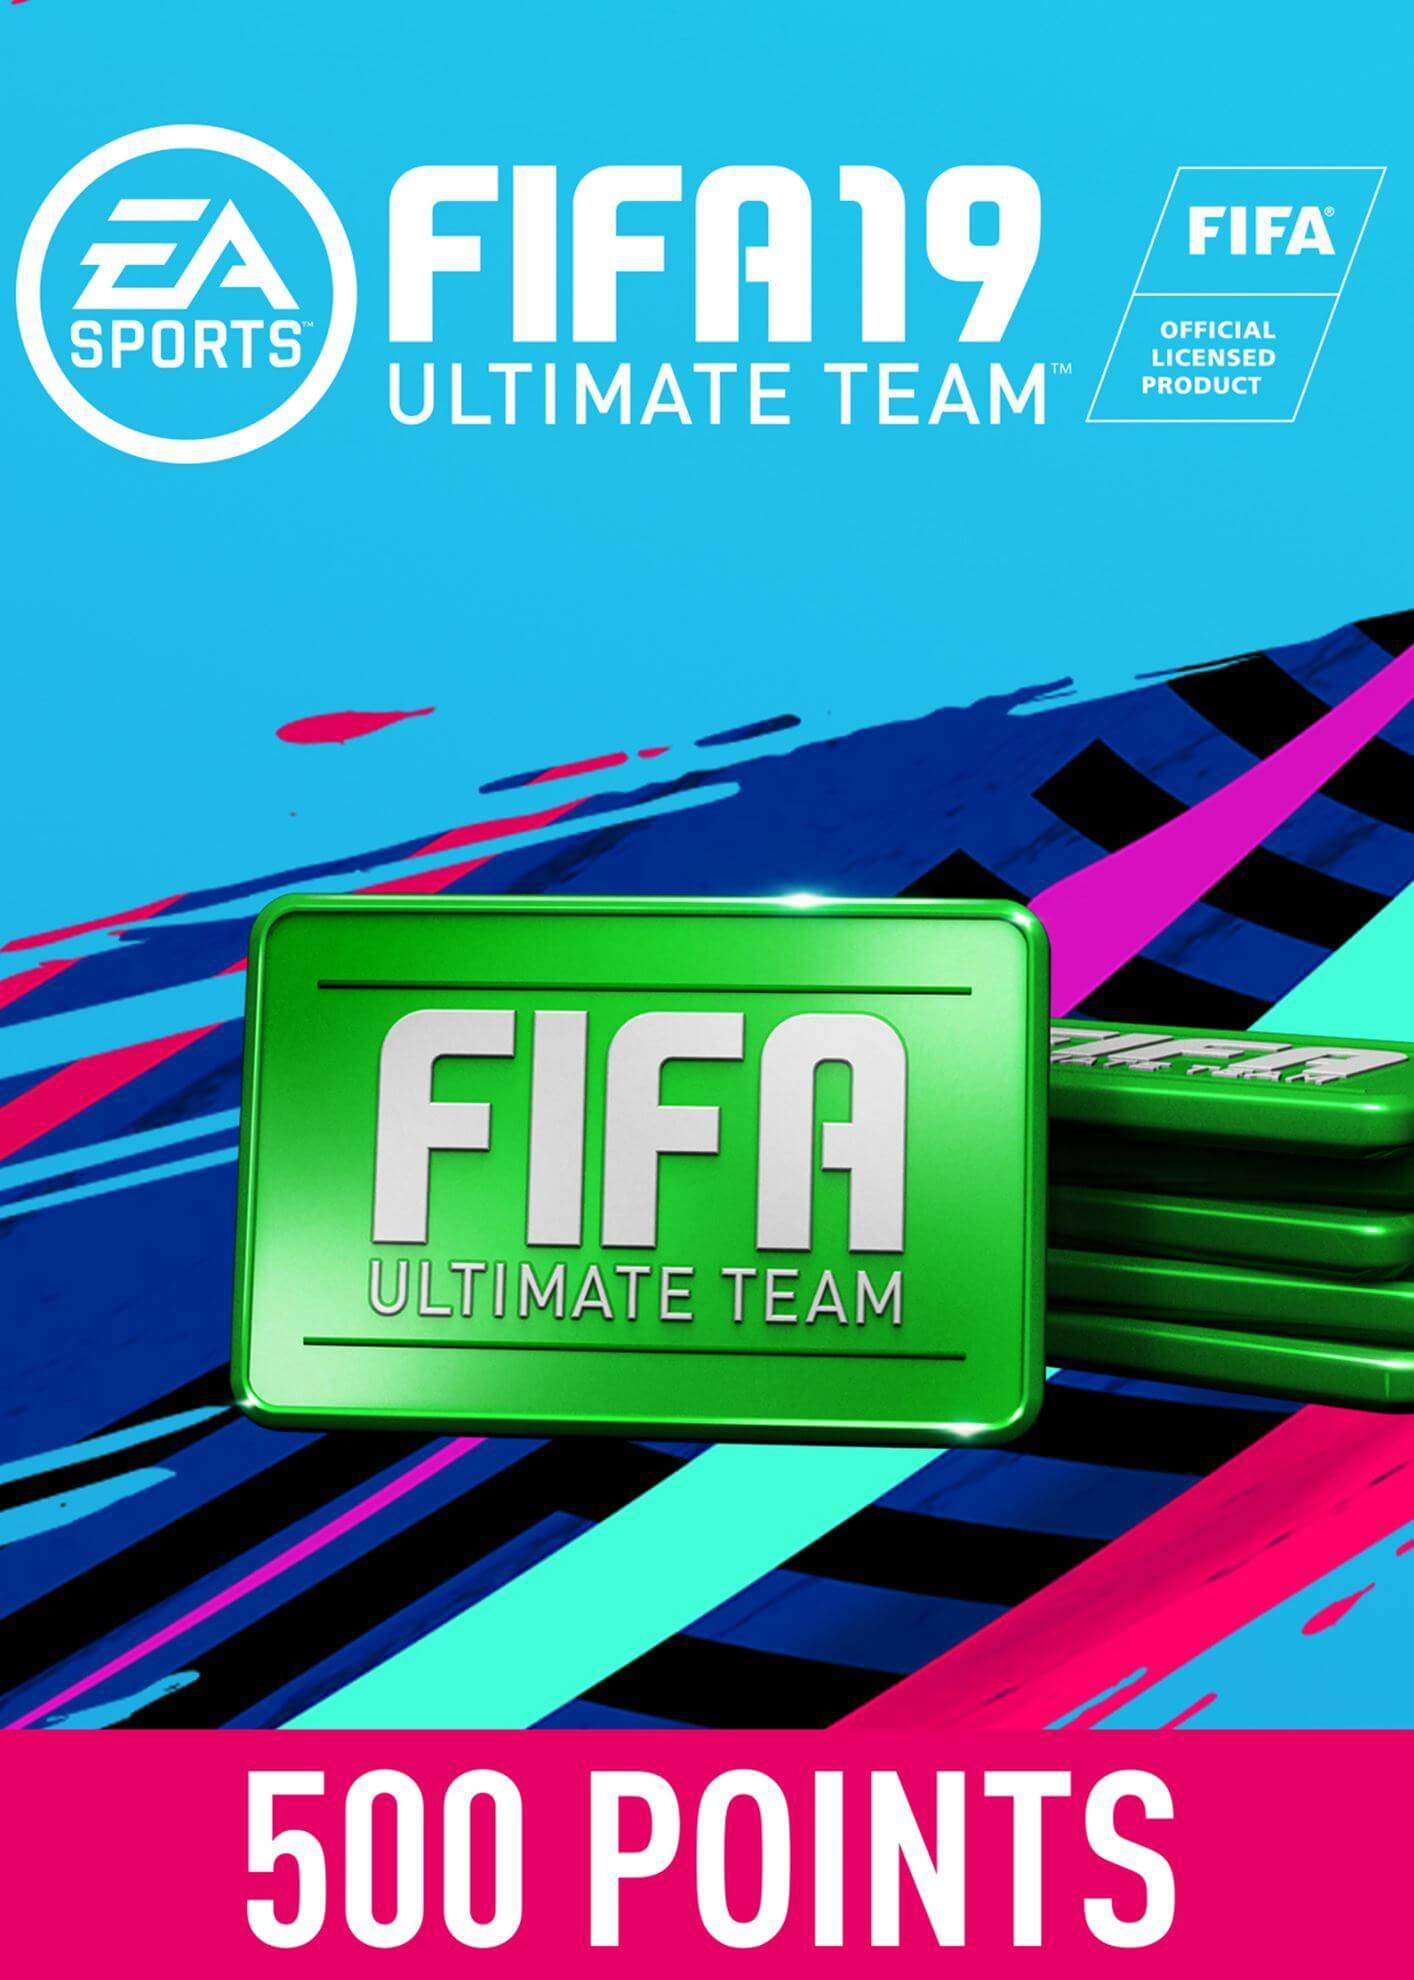 FIFA 19 ULTIMATE TEAM FIFA POINTS 500